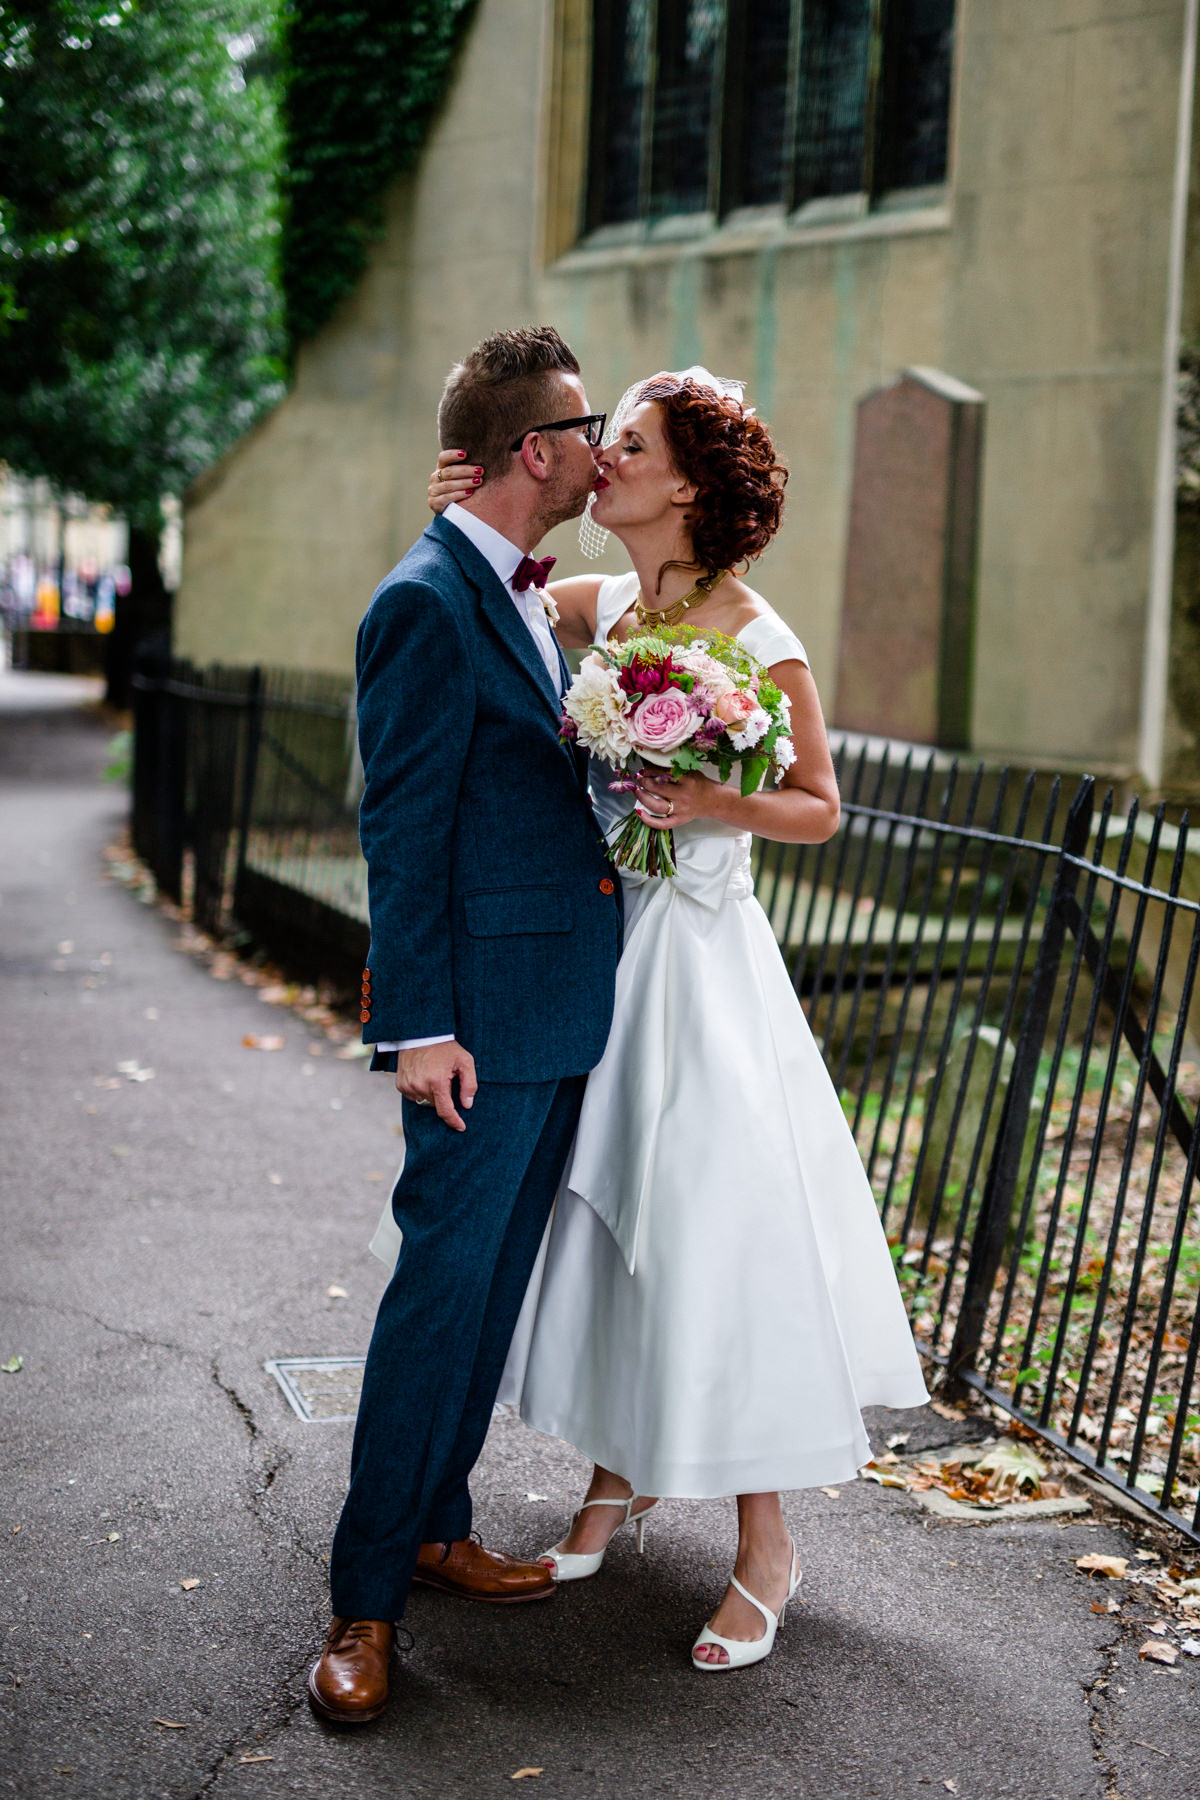 Stoke Newington Town Hall wedding Londesborough Pub EG Michael Stanton Photography 19